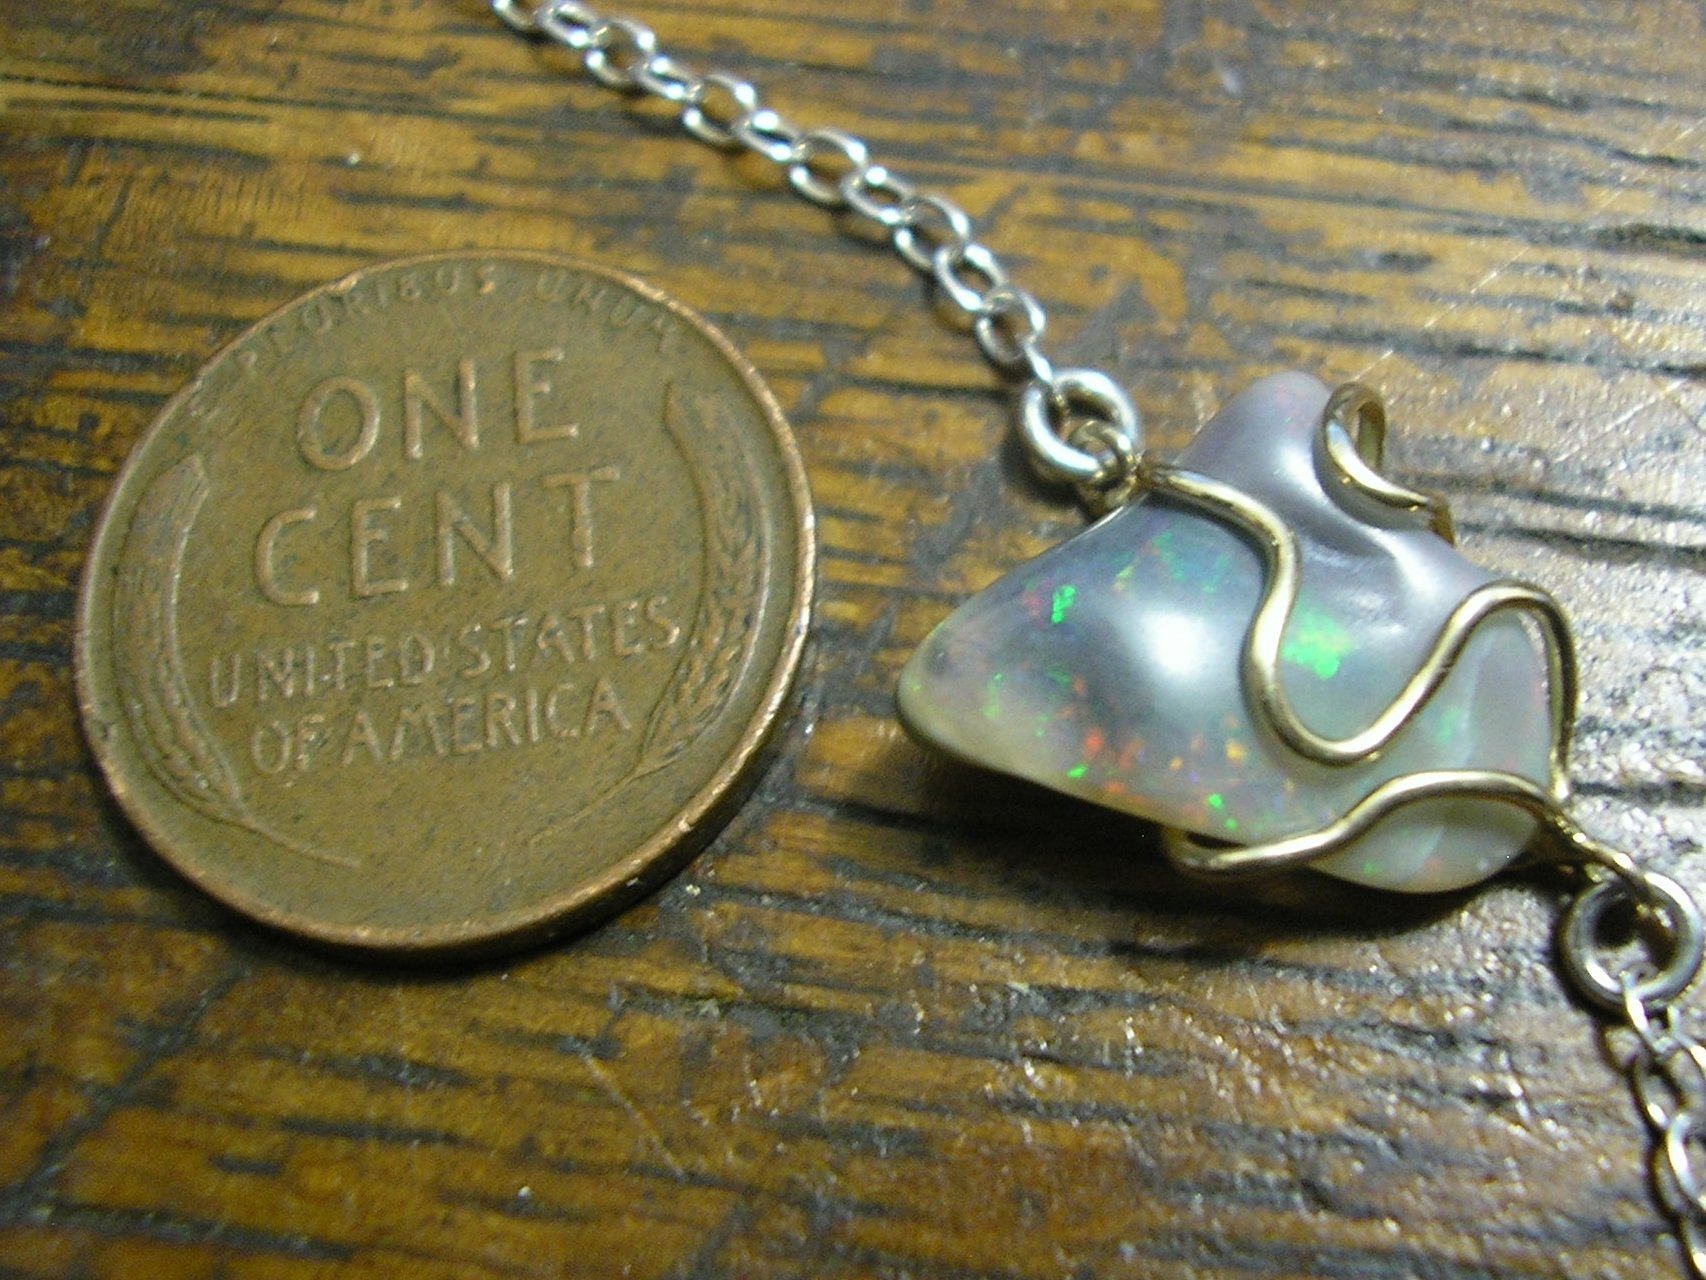 OPAL Necklace, Sterling Silver & 14k Gold, 17.5'' Chain, Natural Crystal, Australian Opal Nugget by Jane Theis